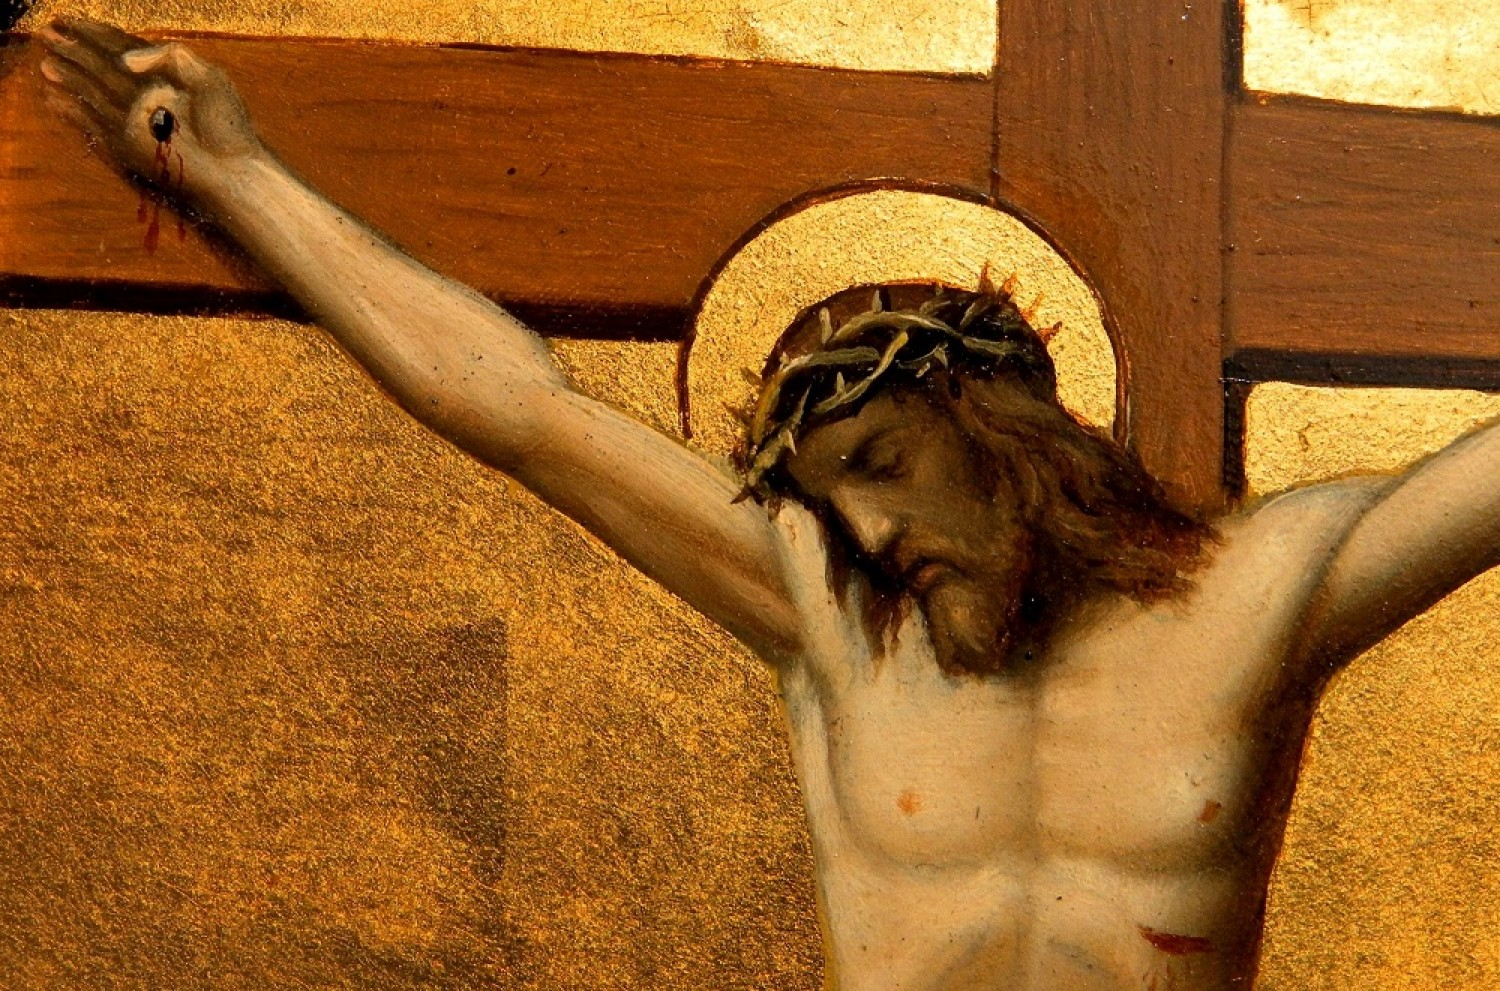 Were You There? - John 19:34/ Pastor Ted Giese / Good Friday